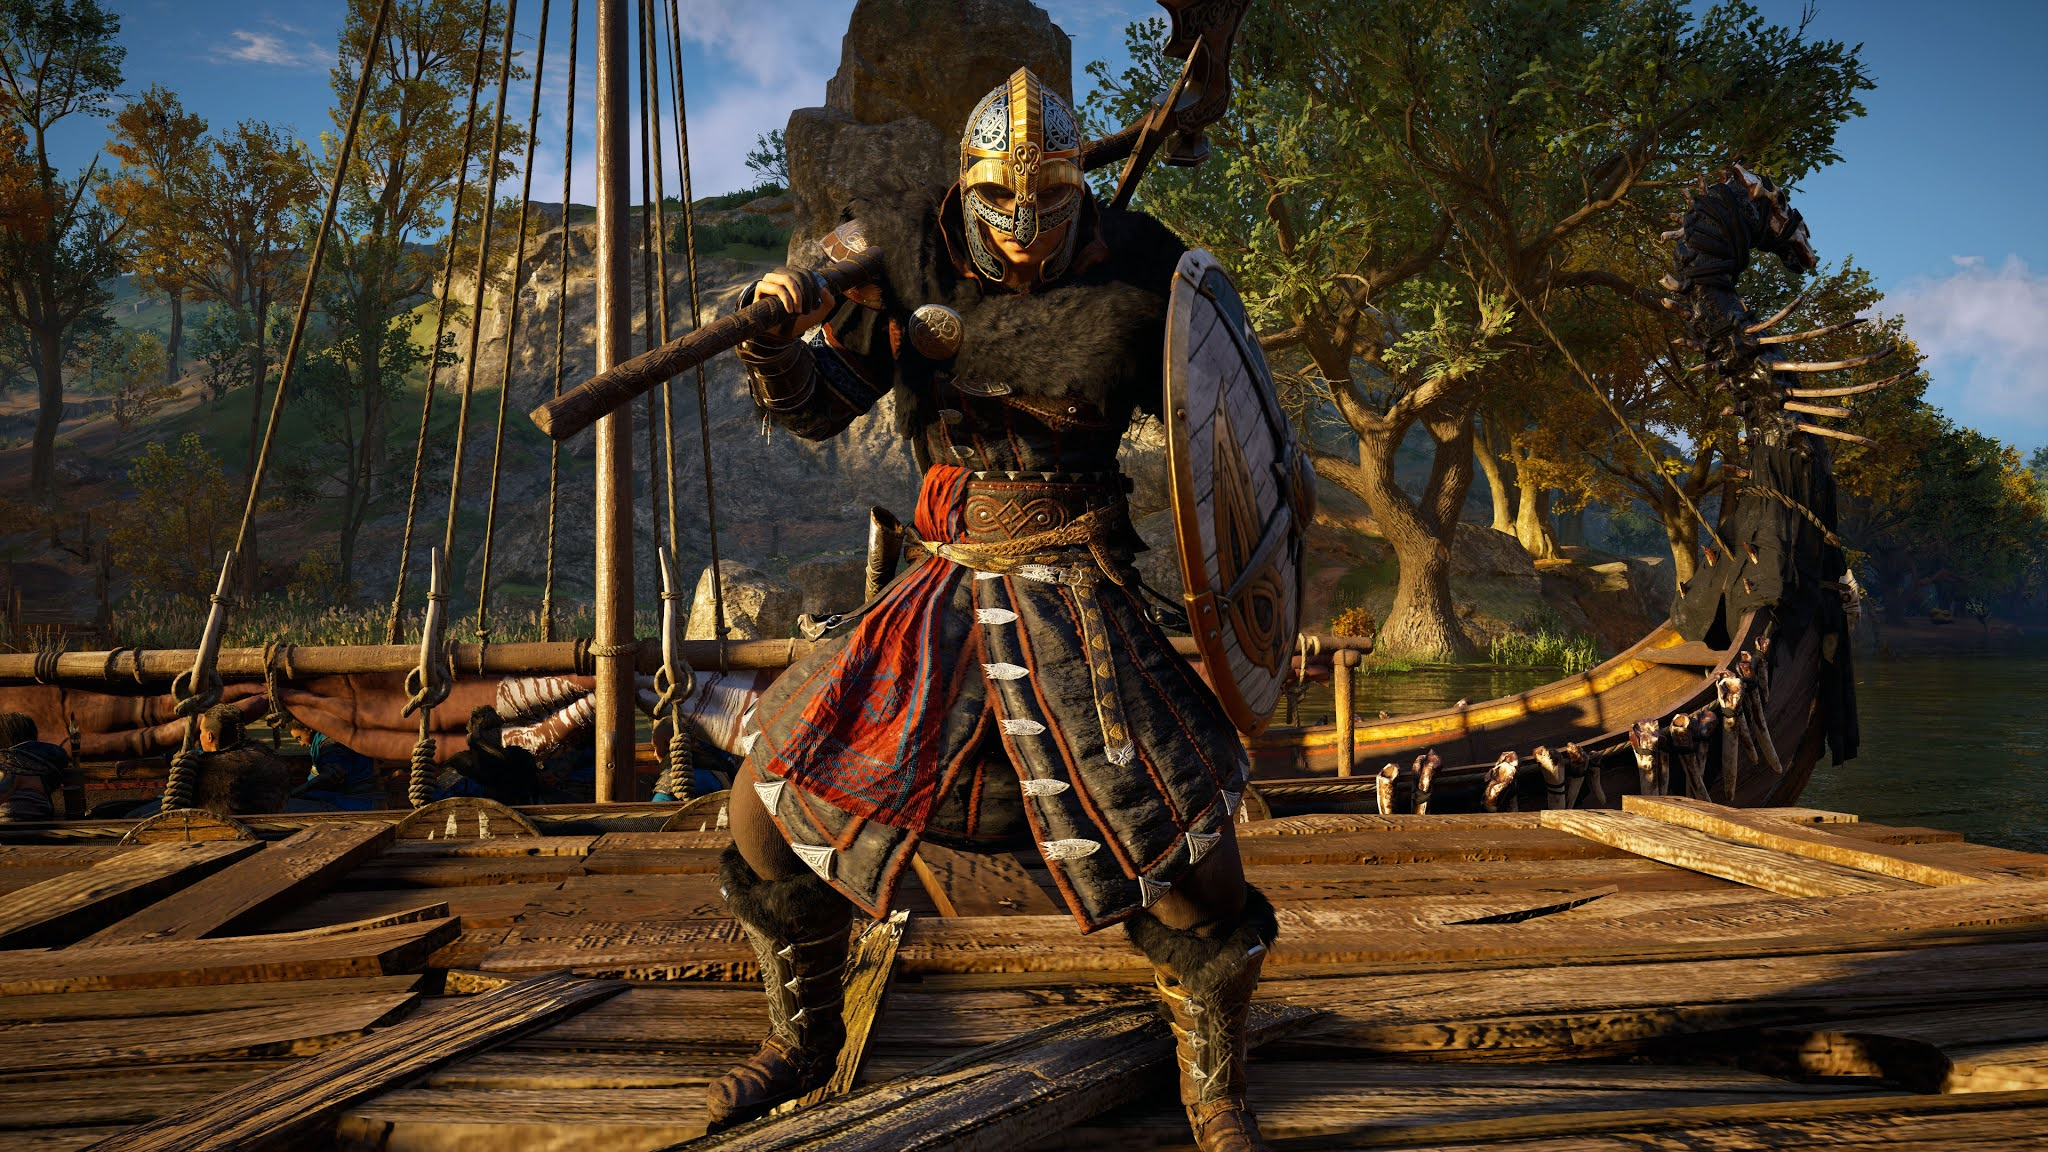 The best Assassin's Creed Valhalla armor sets and the bonuses they give